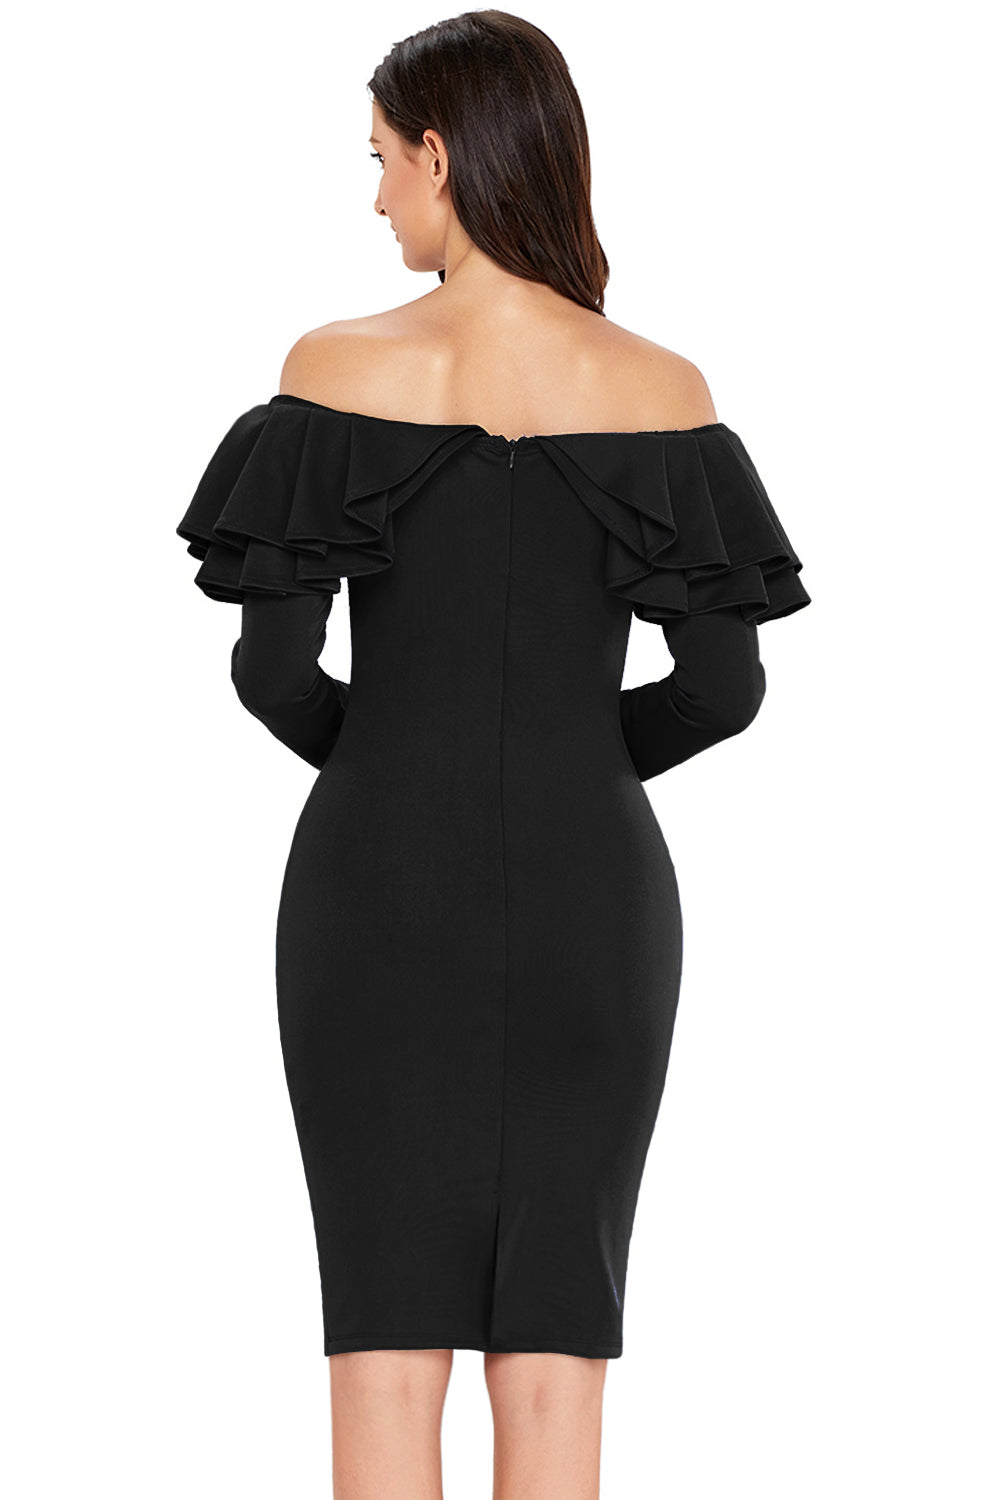 Black Ruffle Off The Shoulder Long Sleeve Bodycon Dress